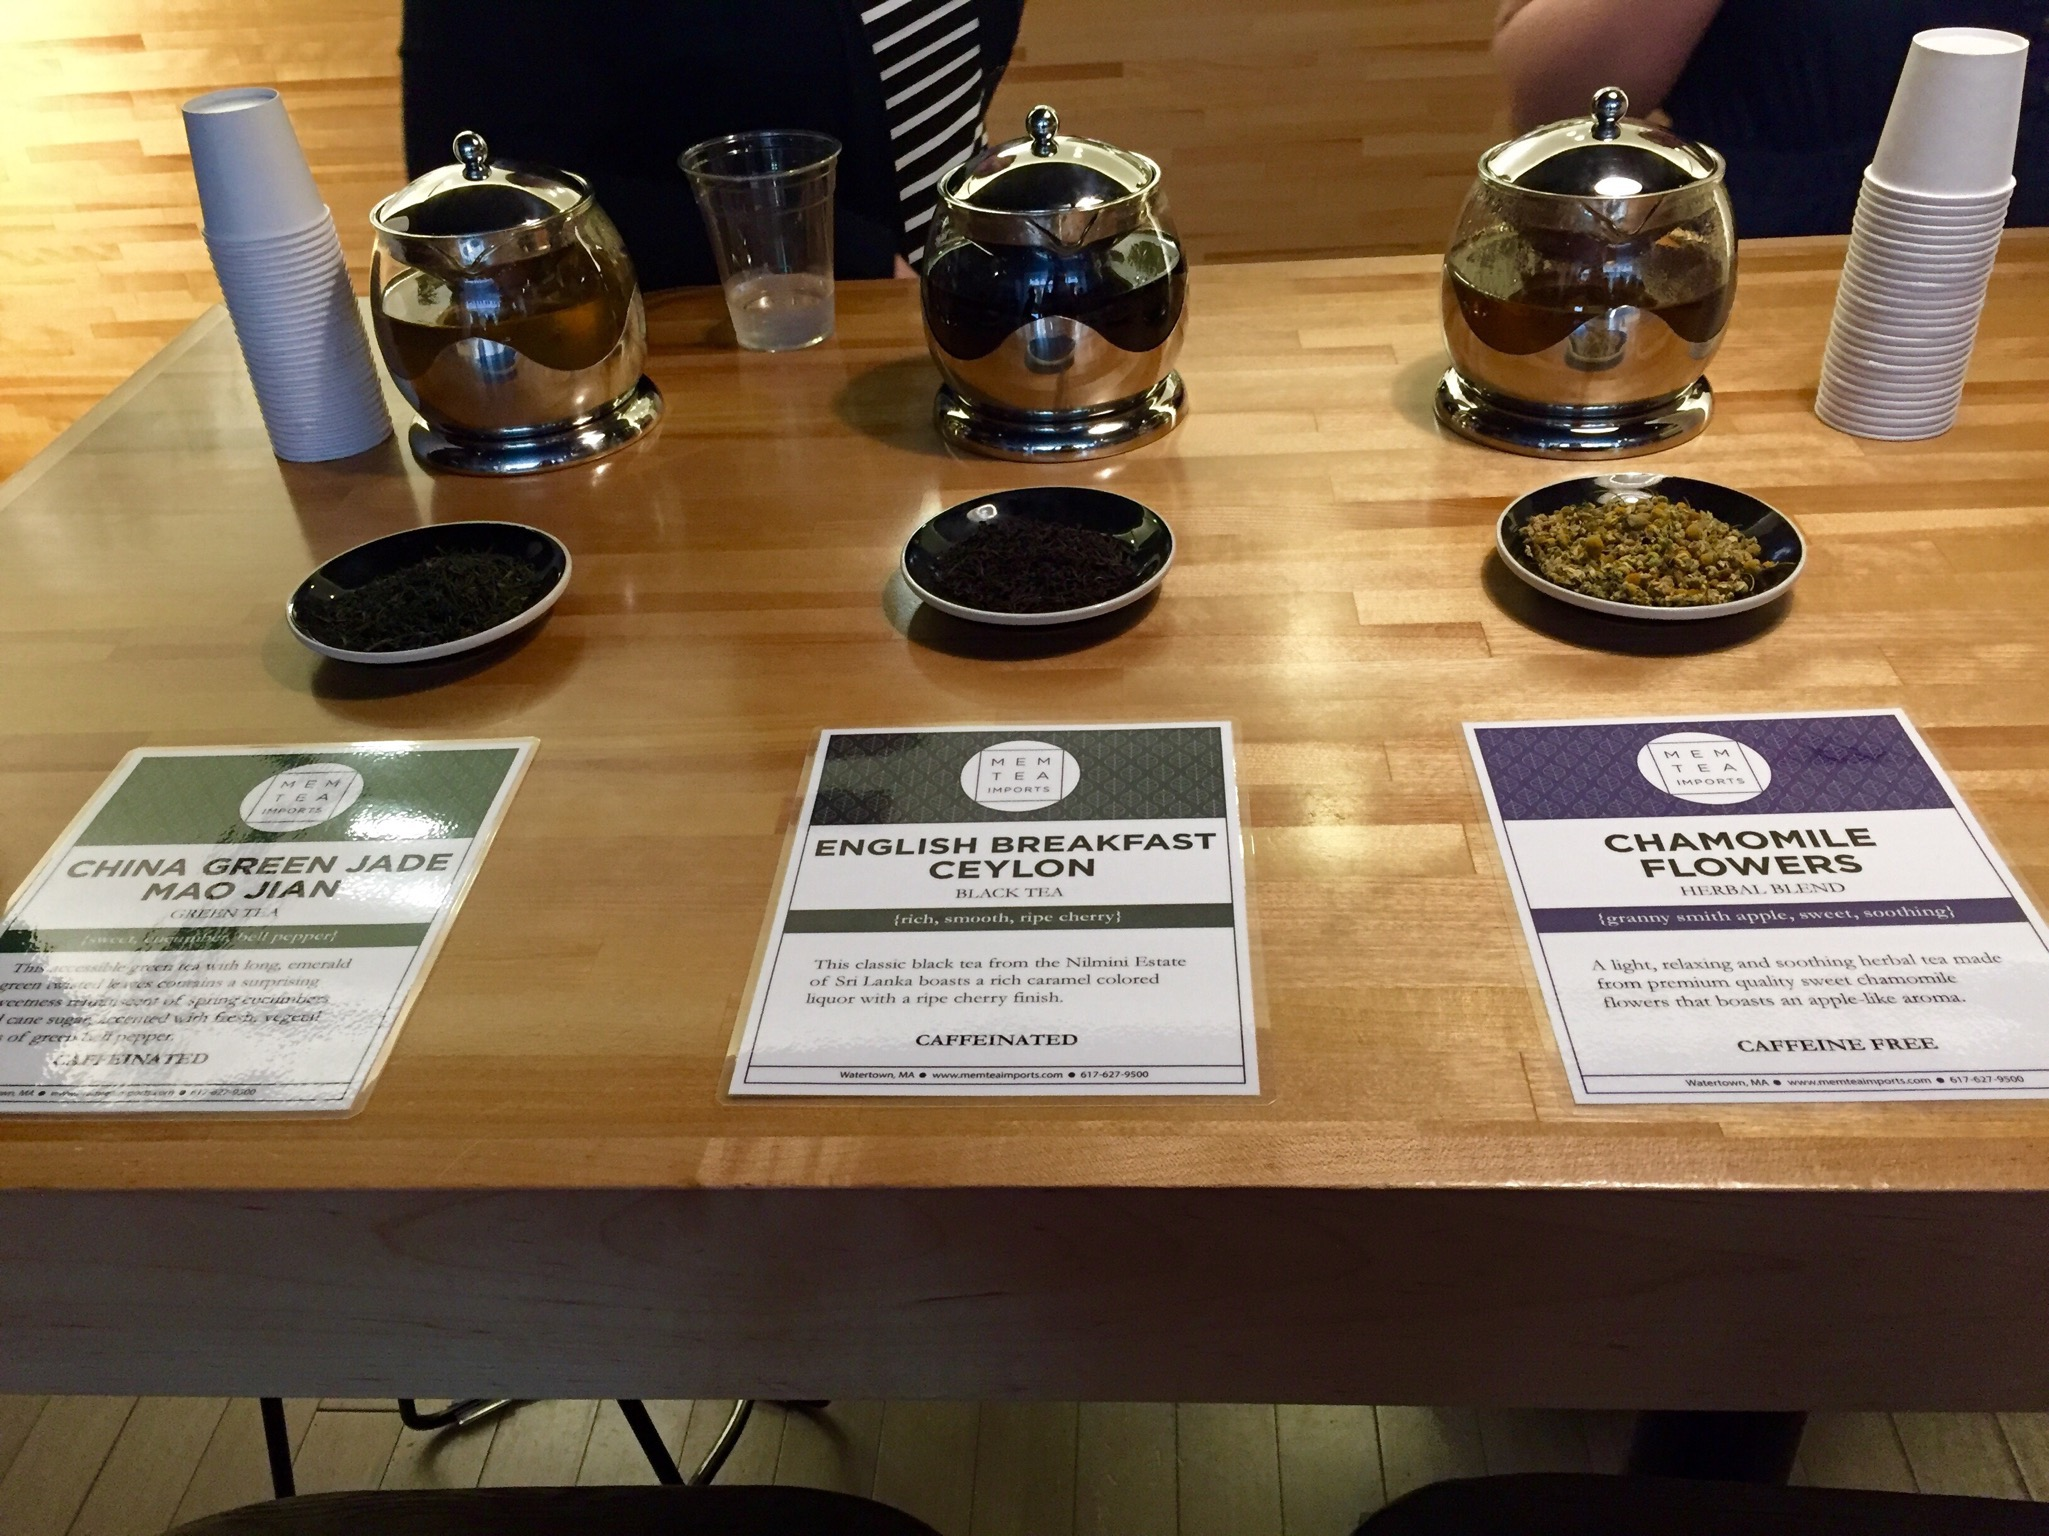 Inspiring Kitchen Caffeine Crawl Crawls Through Chicago